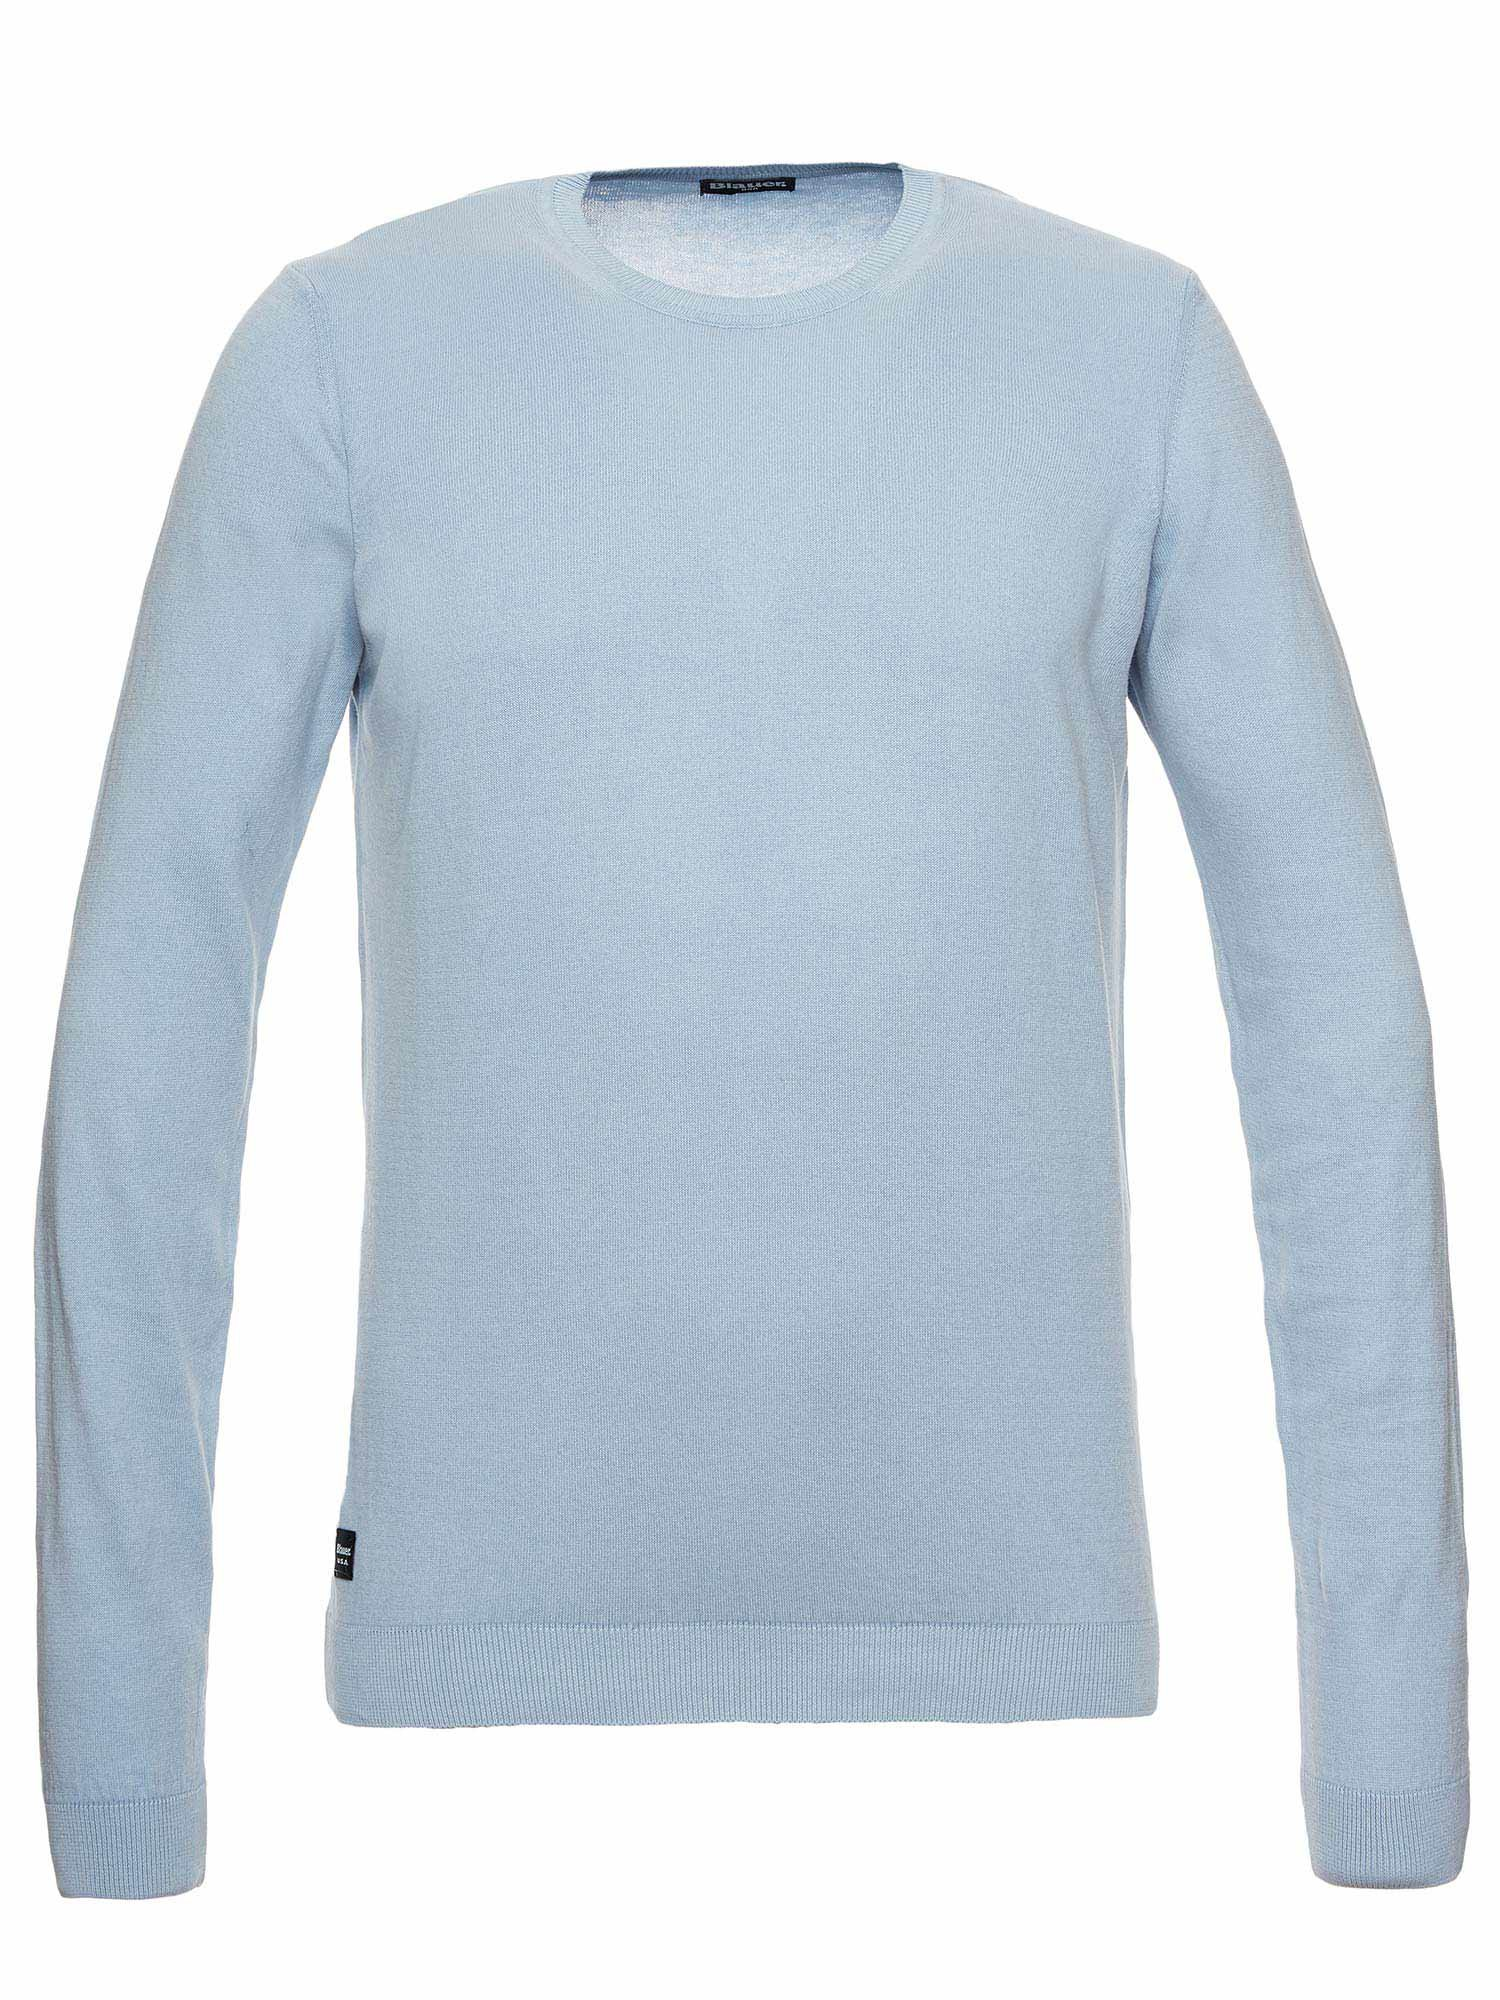 Blauer - COTTON CREW NECK SWEATER - Azure Topaz - Blauer